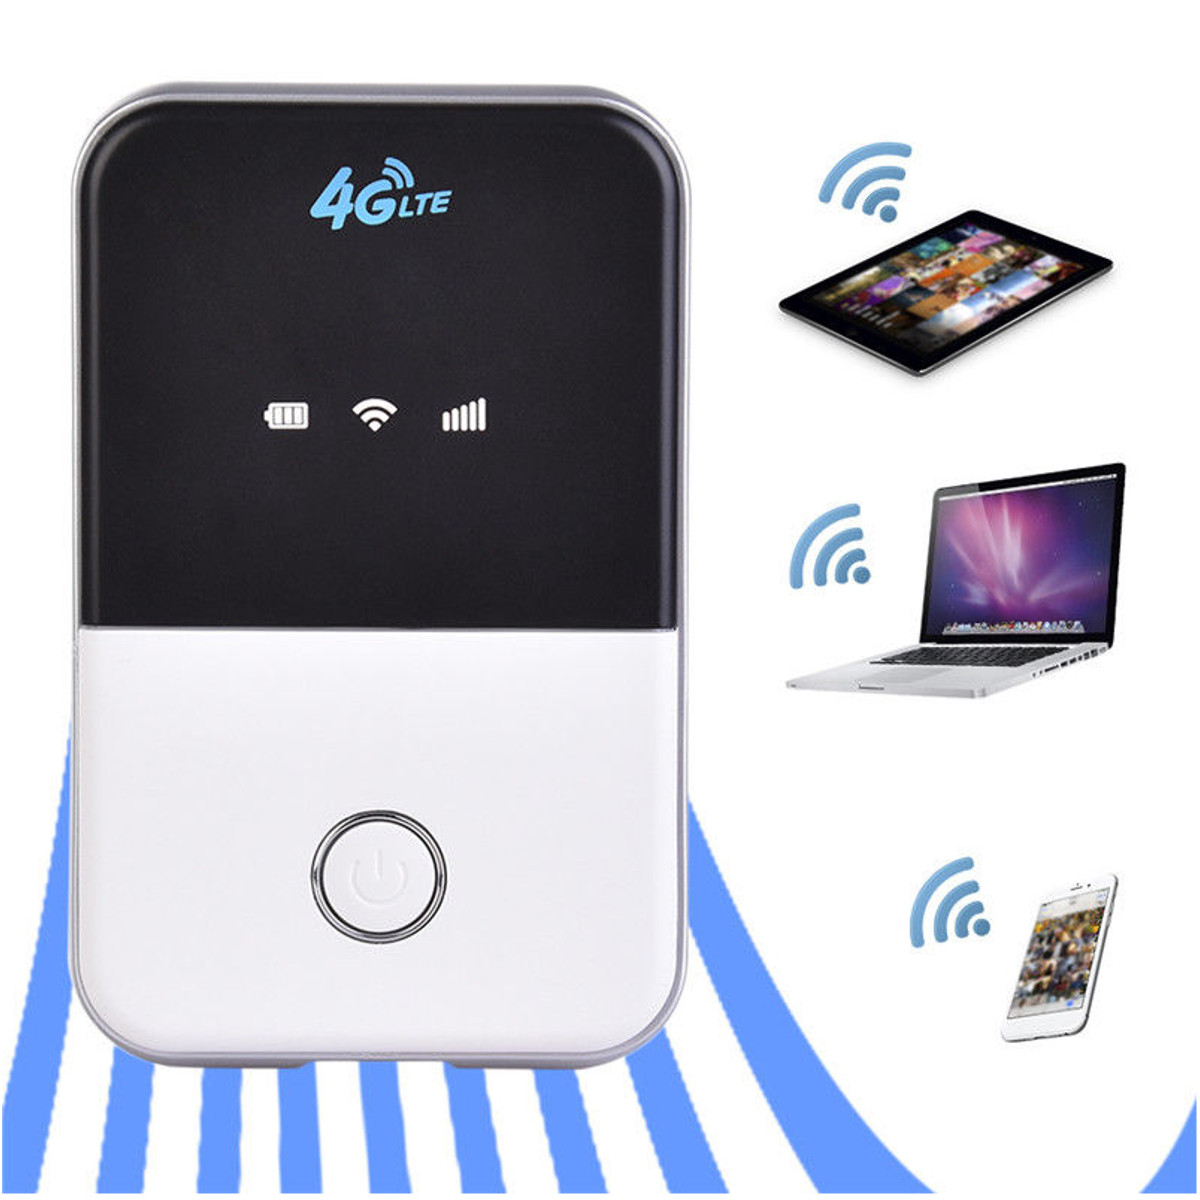 цена на Portable 3G 4G Router LTE 4G Wireless Router Mobile Wifi Hotspot SIM Card Slot for Mobile Phone